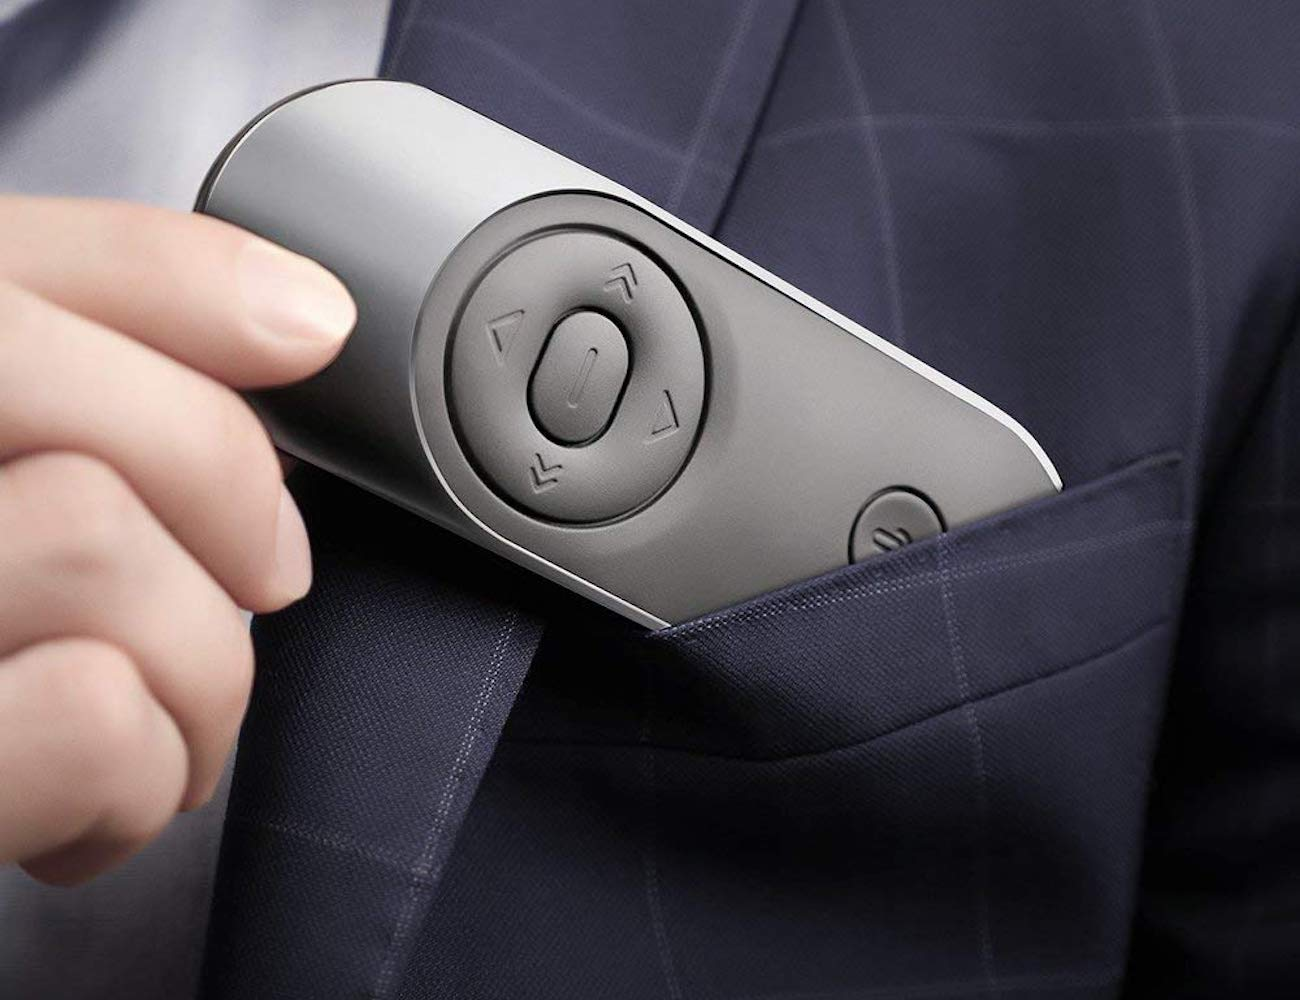 Luxtude Multifunctional Presenter Remote